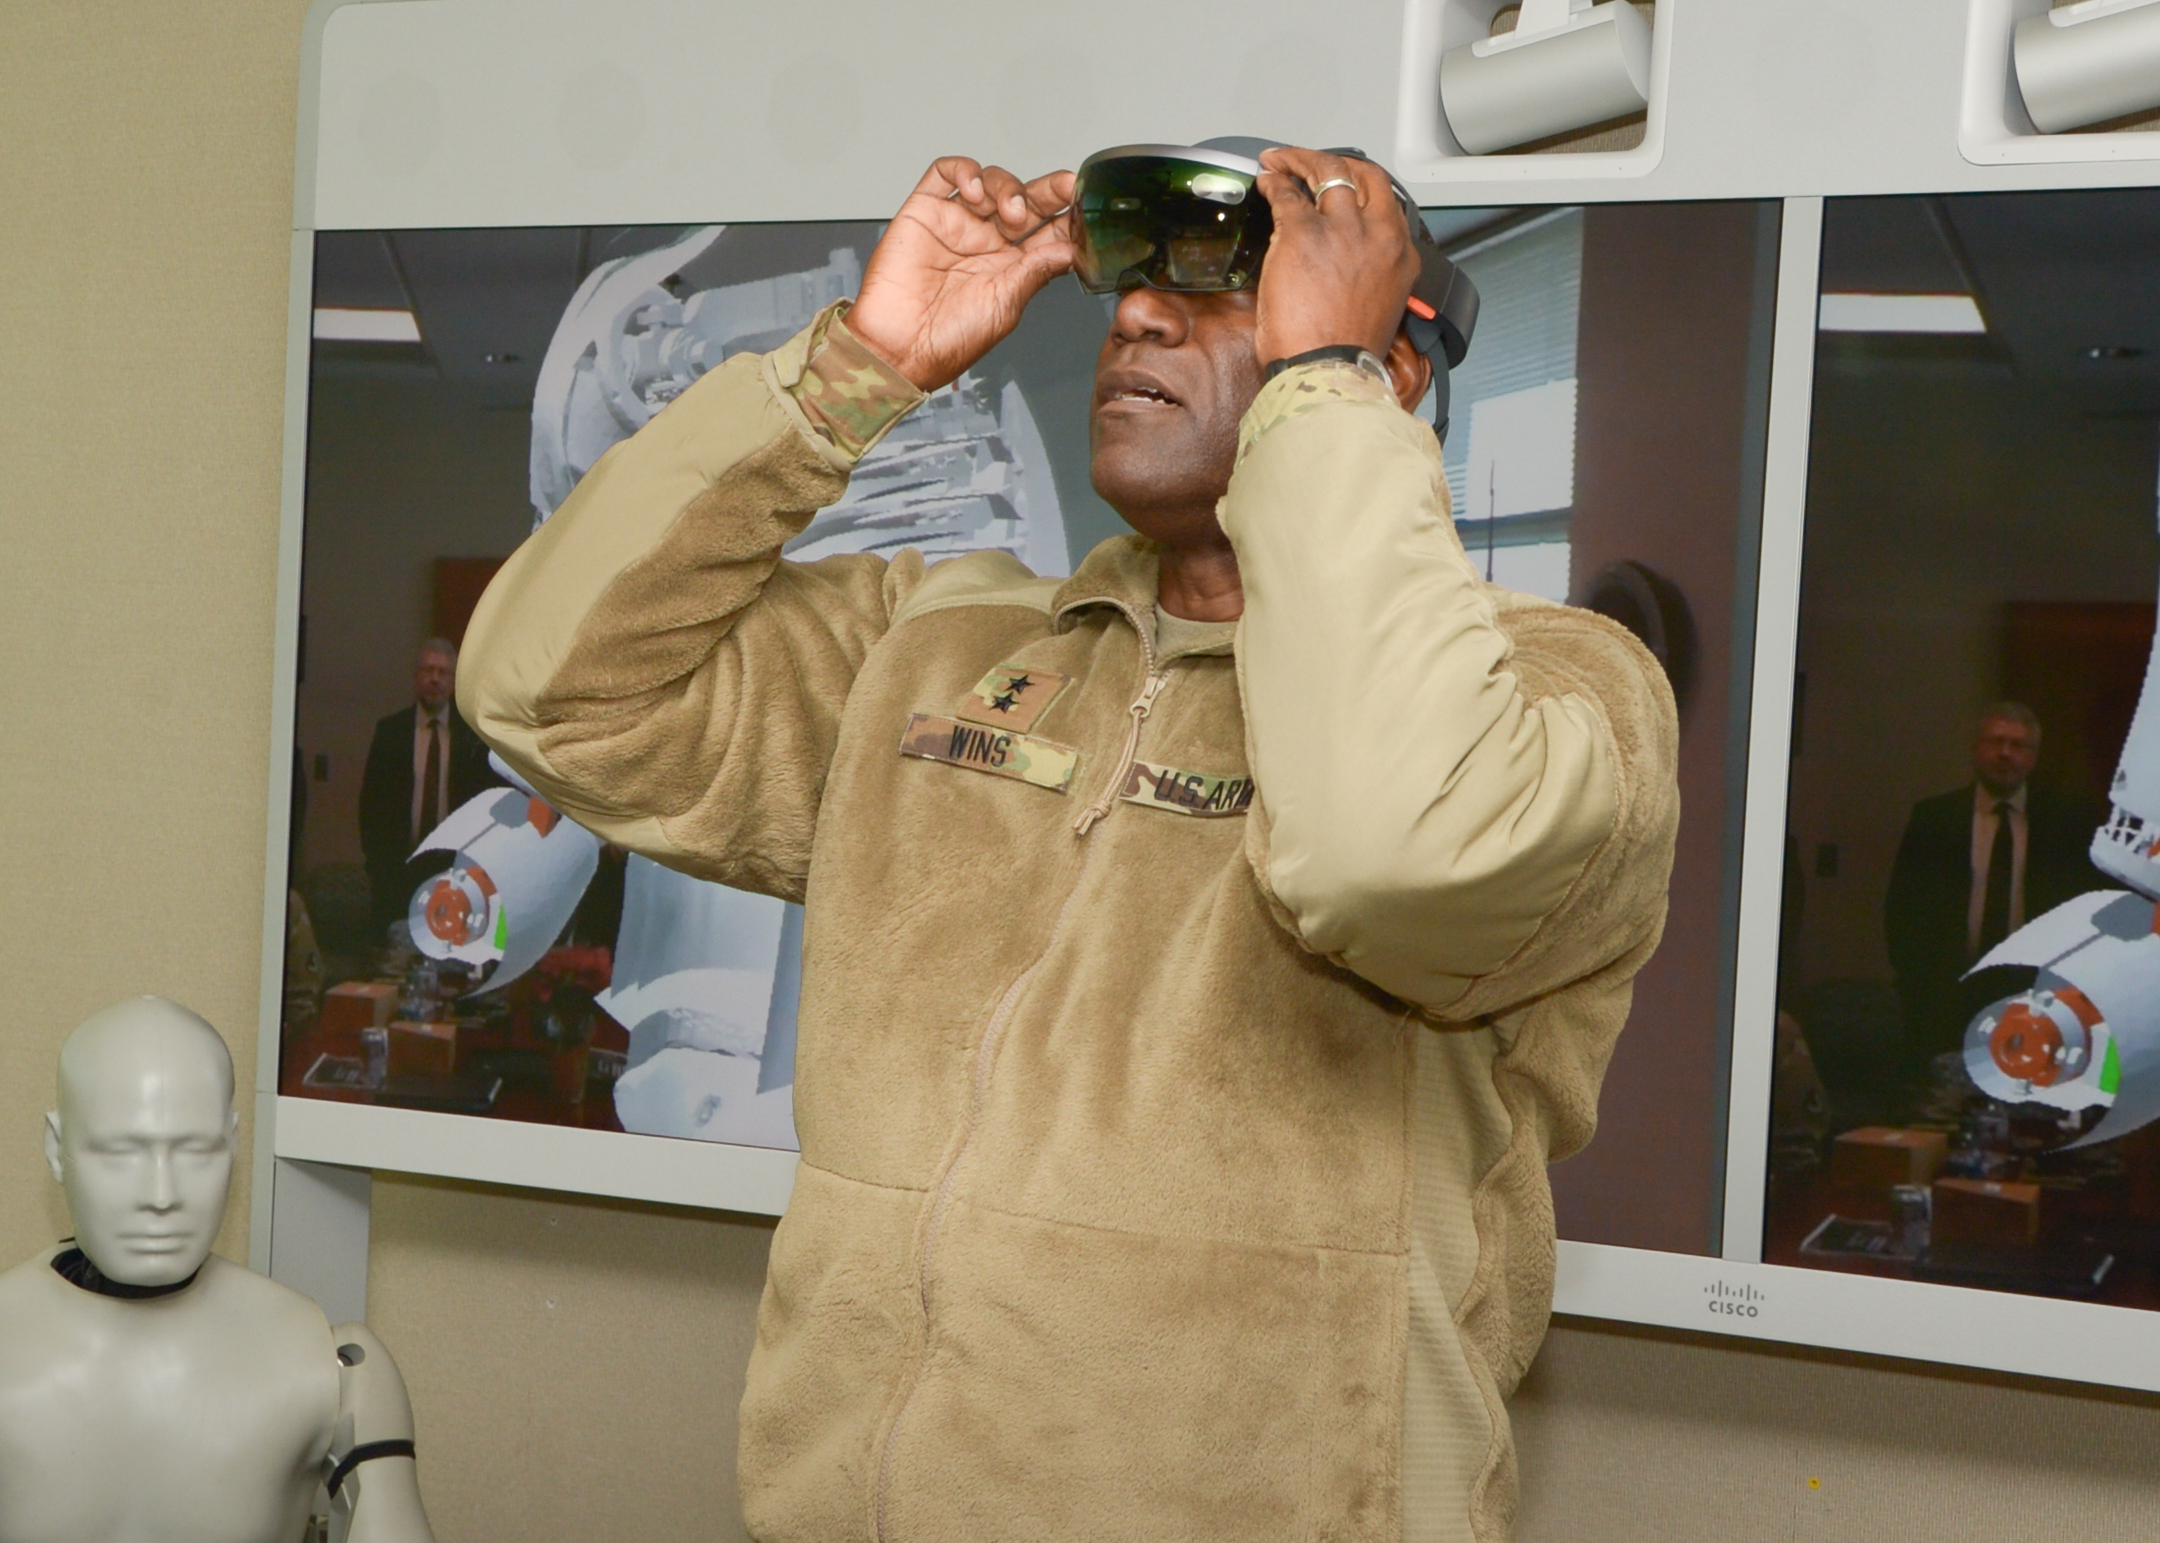 RDECOM Commander Maj. Gen. Cedric T. Wins dons advanced holographic glasses -- the Hololens from Microsoft. Researchers use the glasses to virtually explore simulations and gain new understanding of how blast injuries affect Soldiers. (Photo credit: Conrad Johnson)